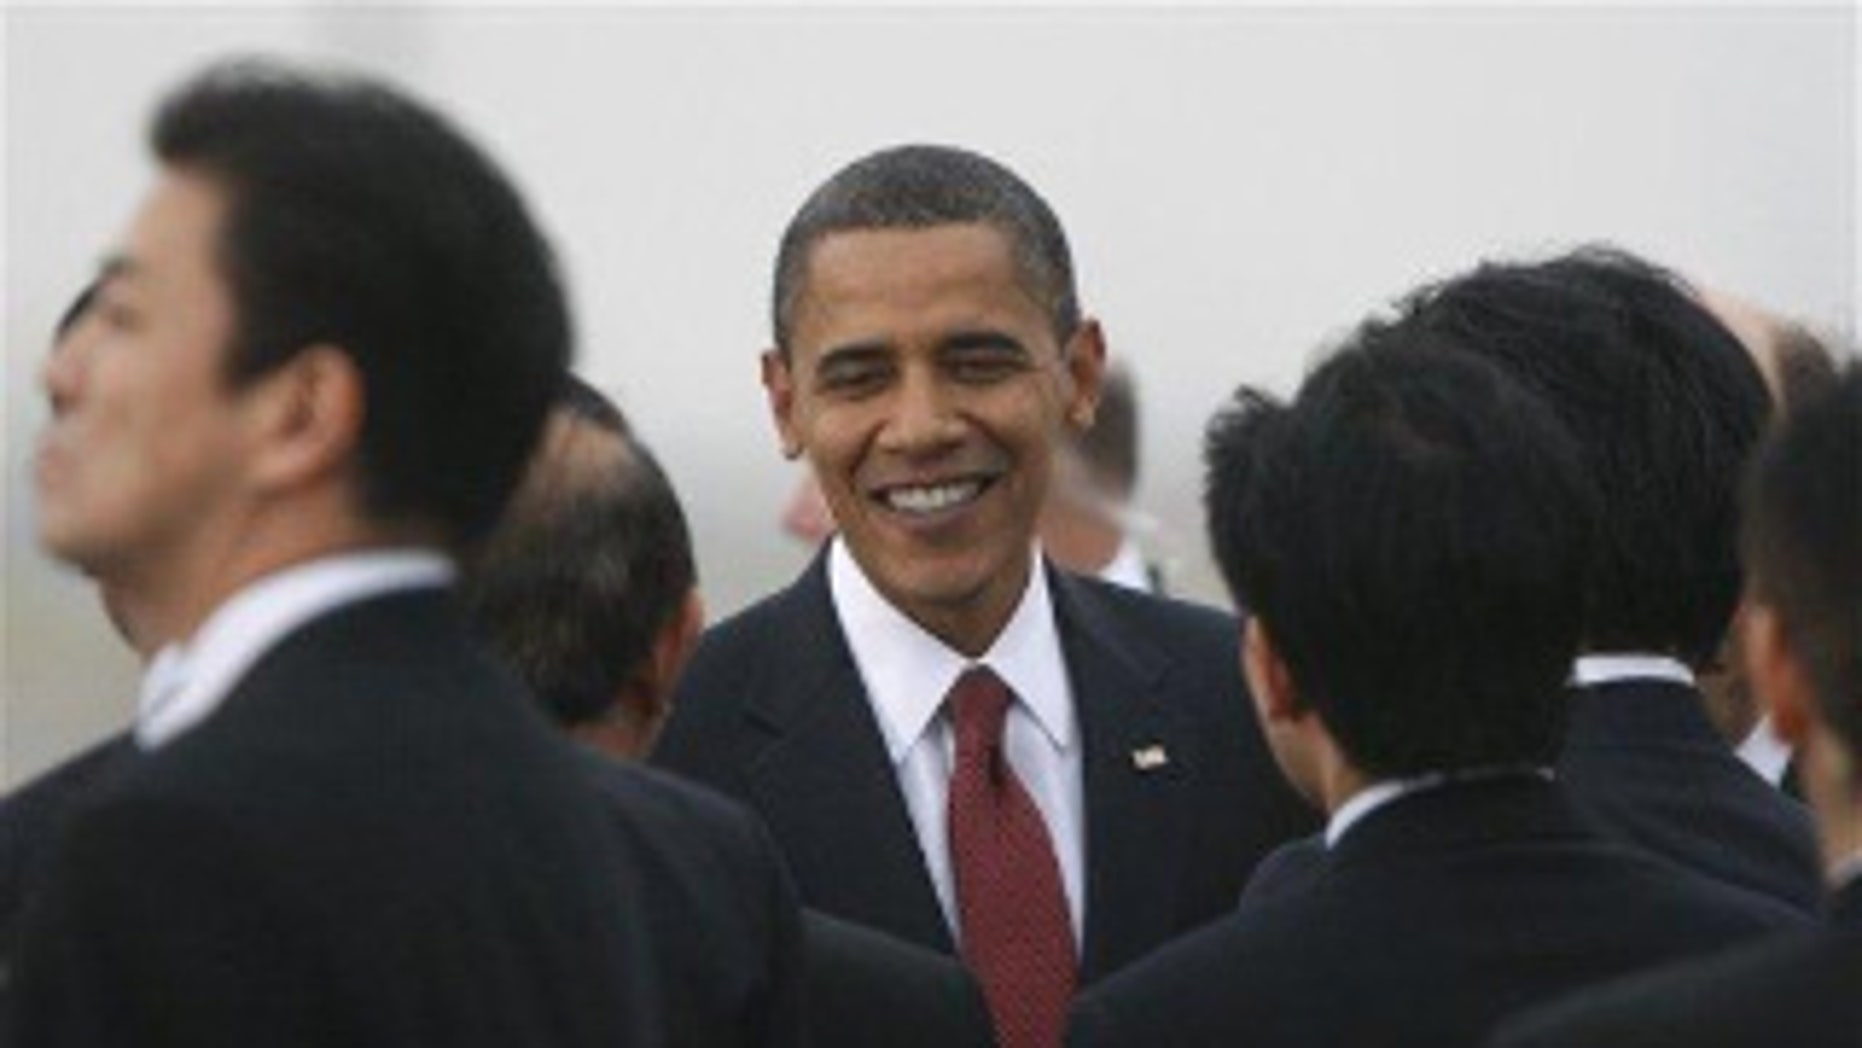 President Obama is greeted at Haneda Airport in Tokyo. (AP Photo)